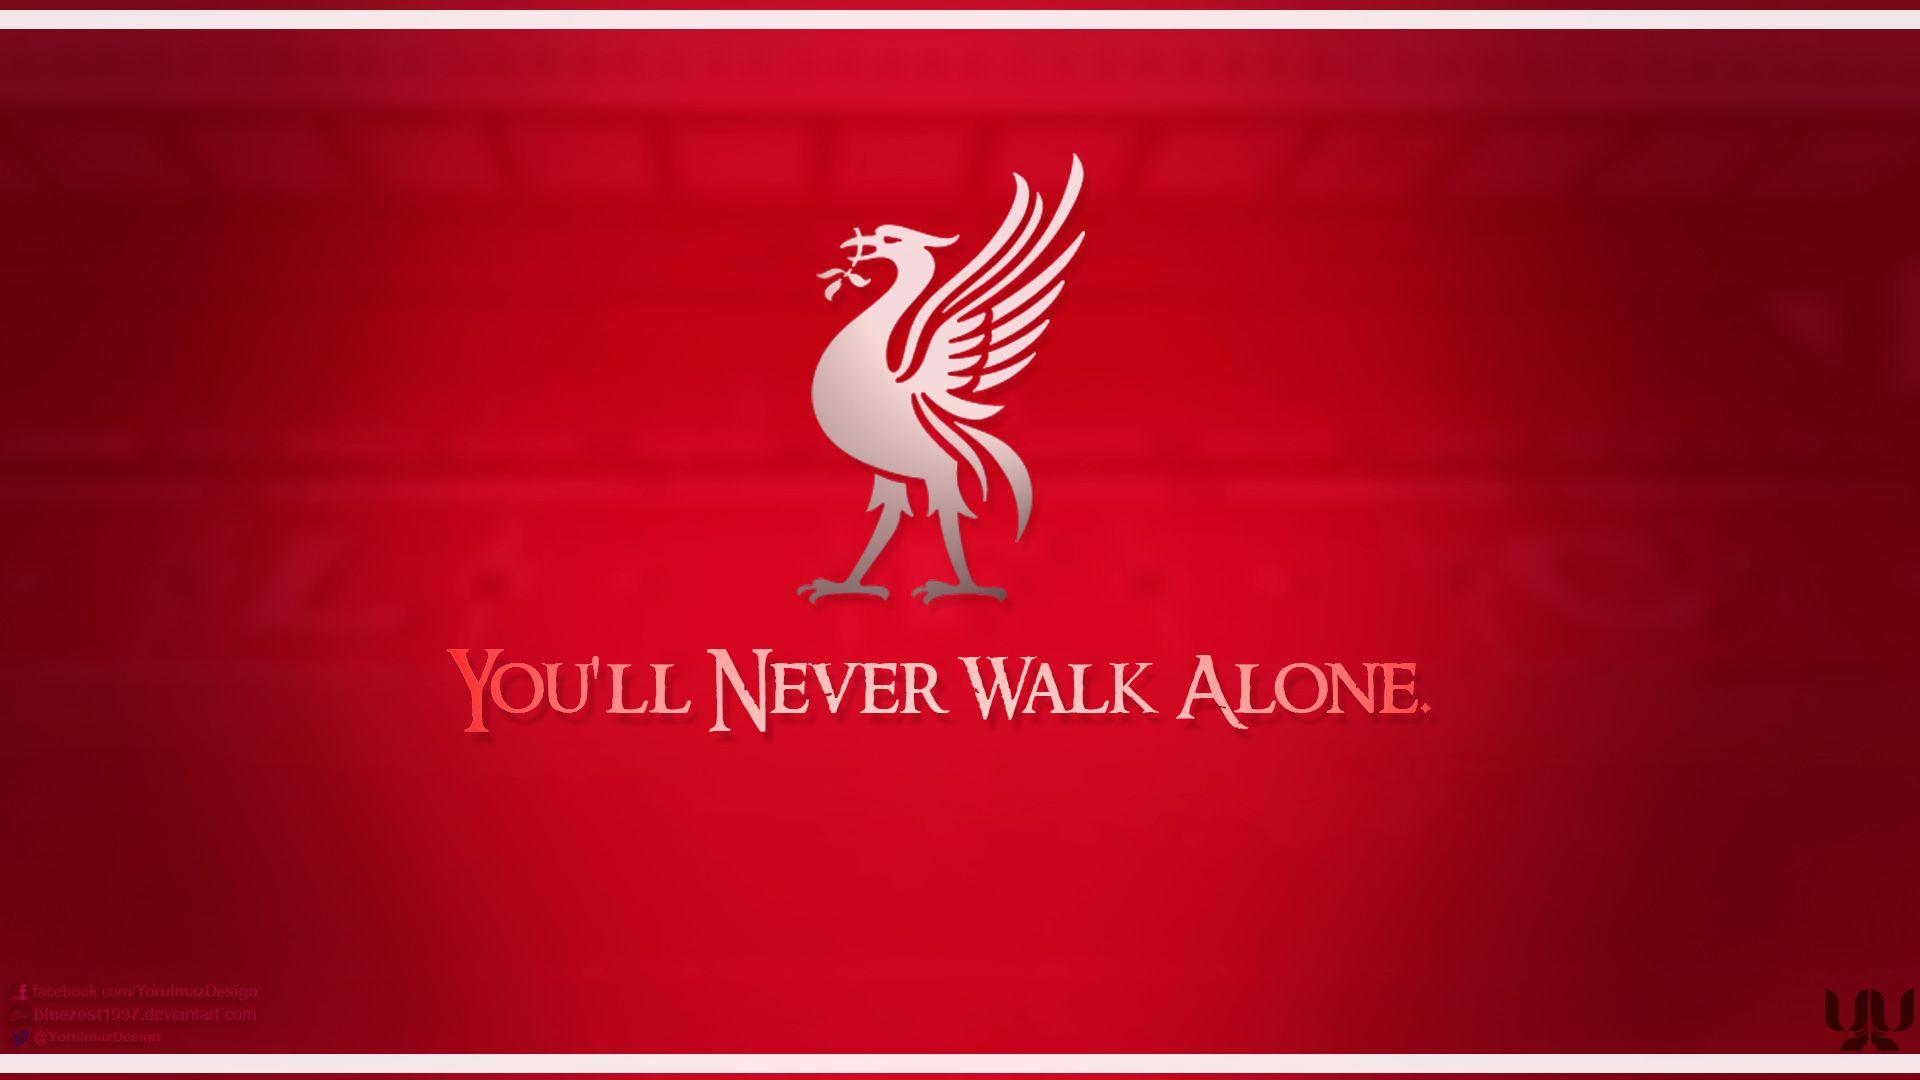 liverpool wallpapers 2016